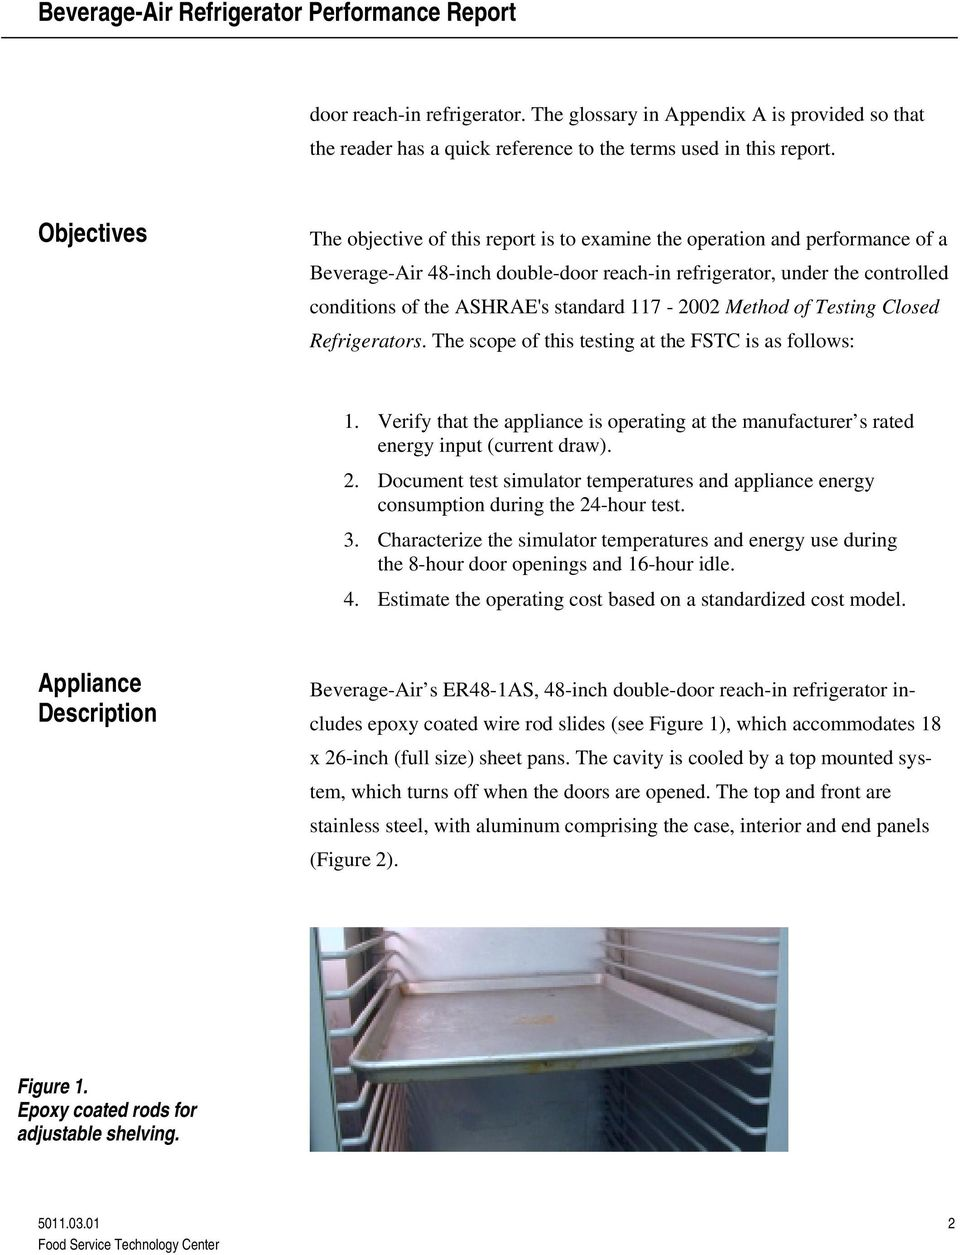 Beverage-Air Refrigerator Performance Testing - PDF on